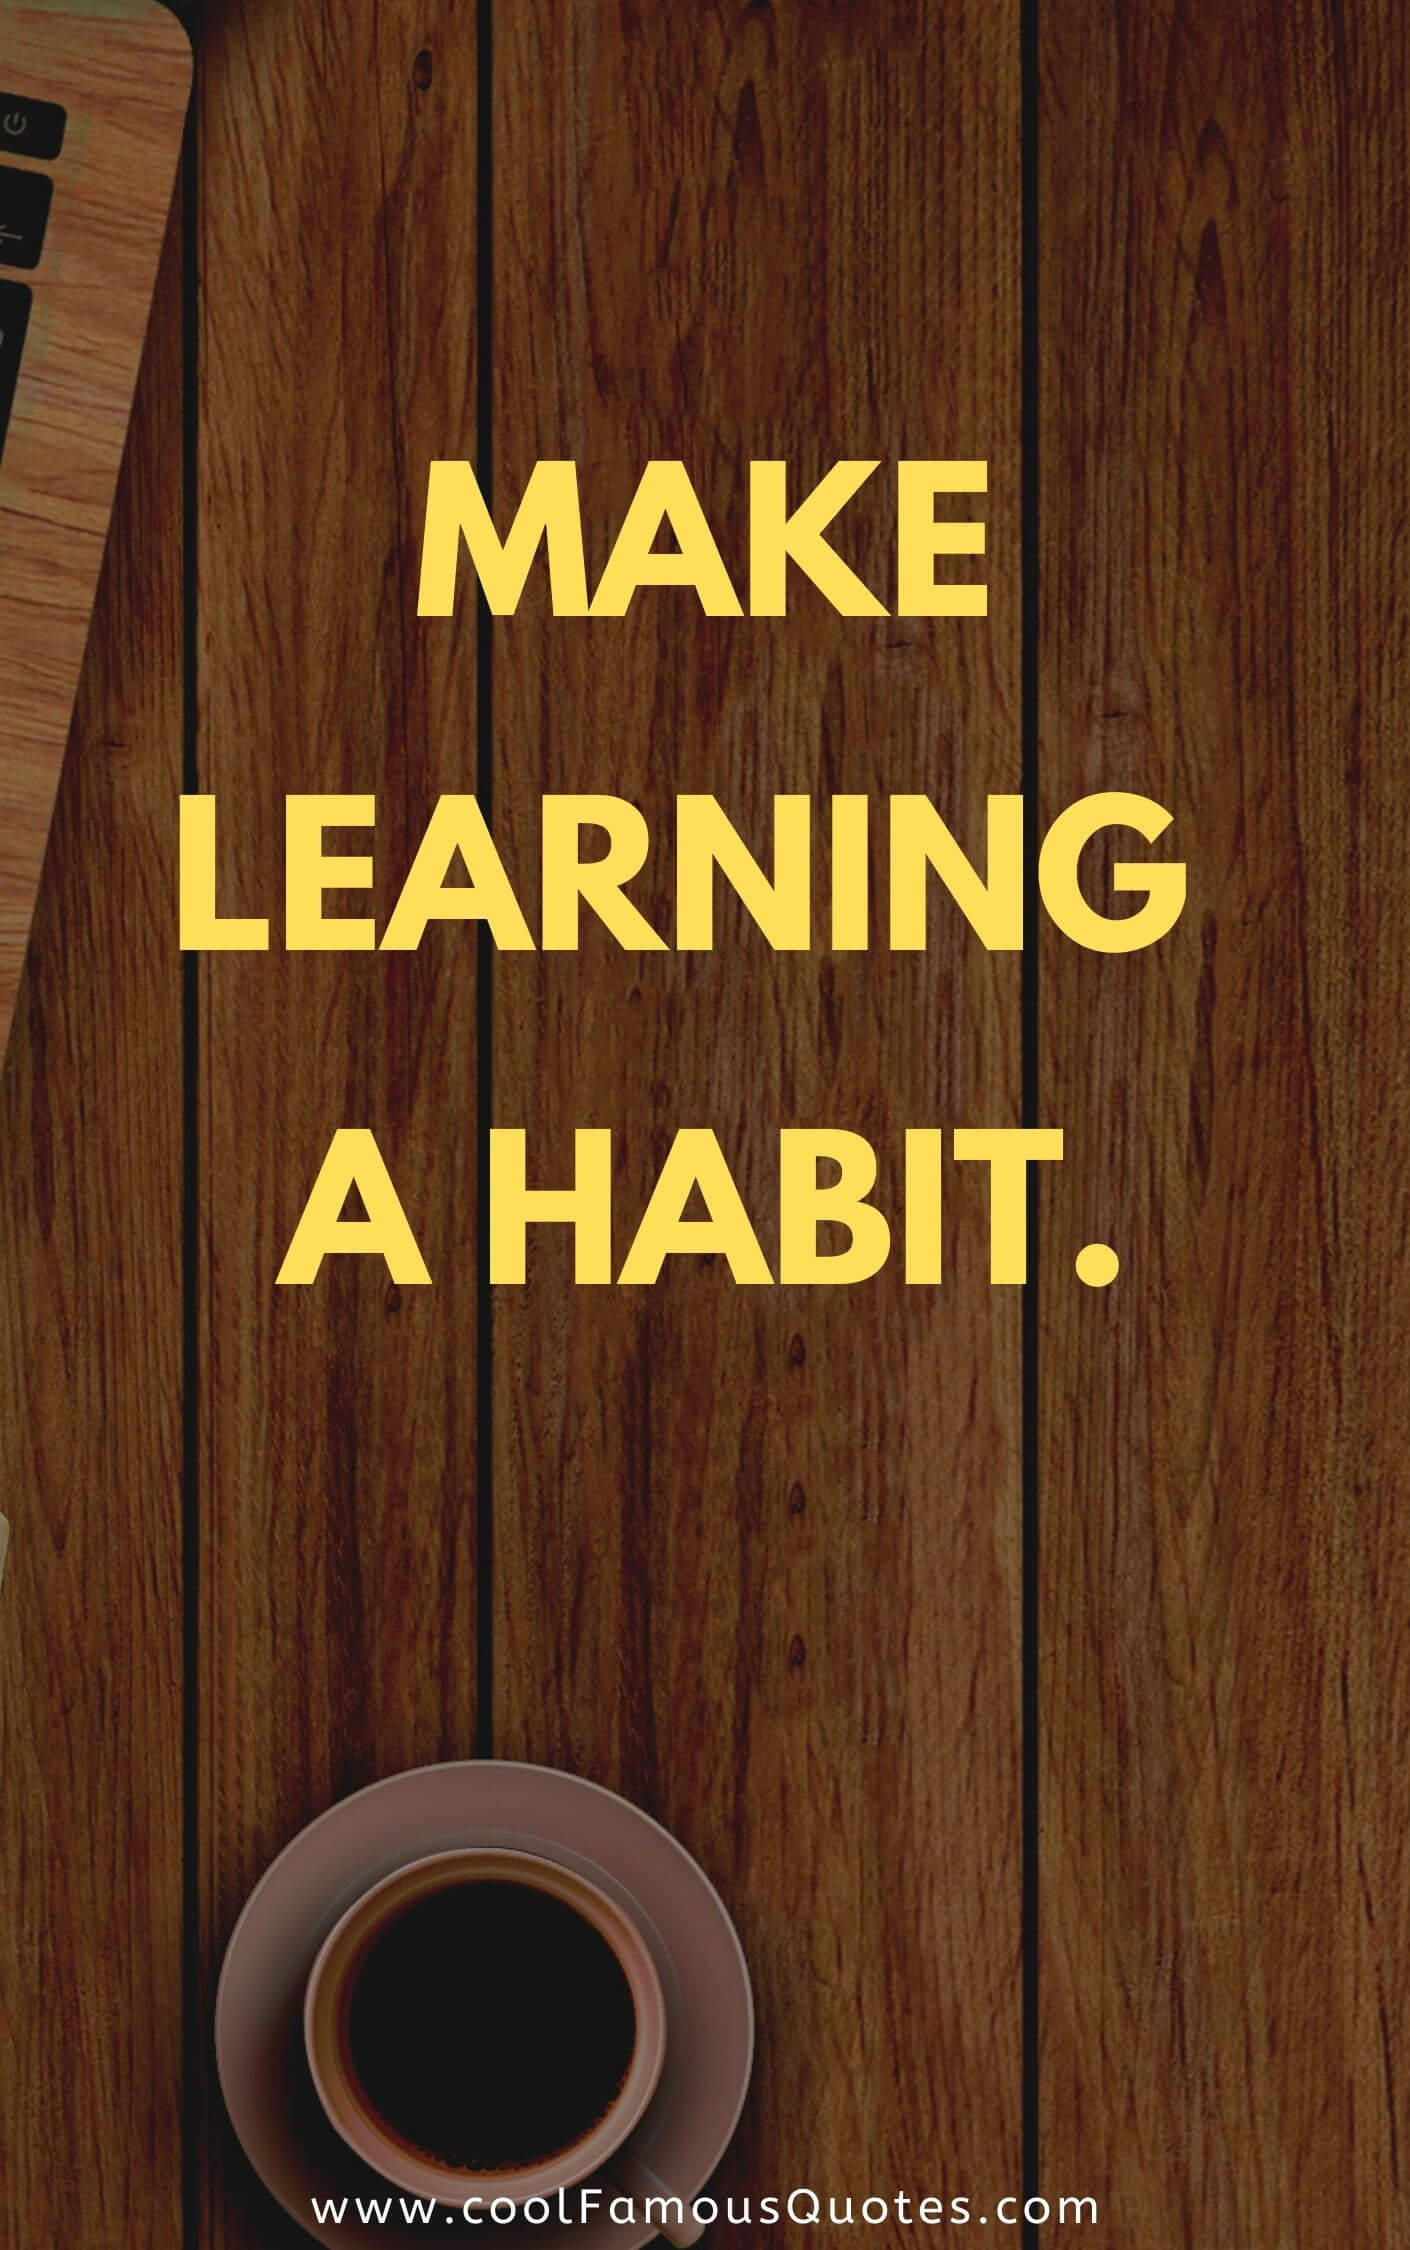 Make learning a habit.